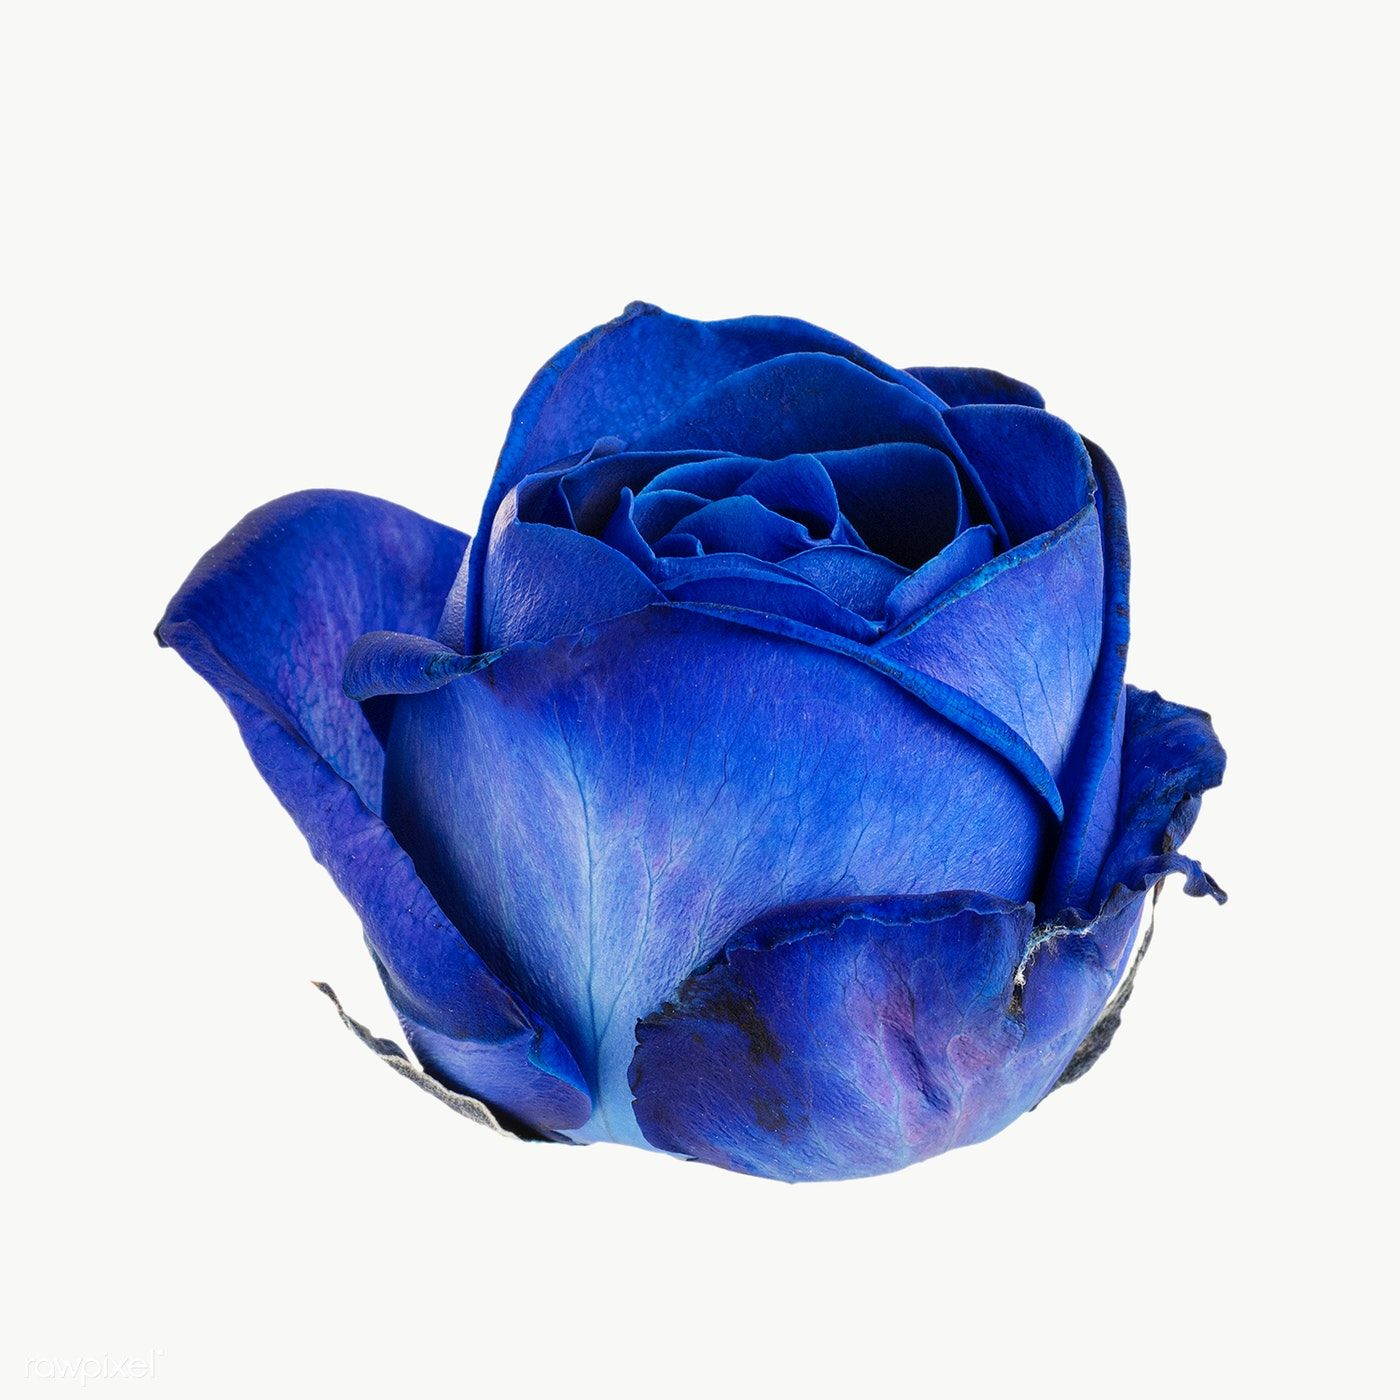 Blue Rose Flower Transparent Png Free Image By Rawpixel Com Jira In 2020 Yellow Rose Flower White Lily Flower Red Rose Flower